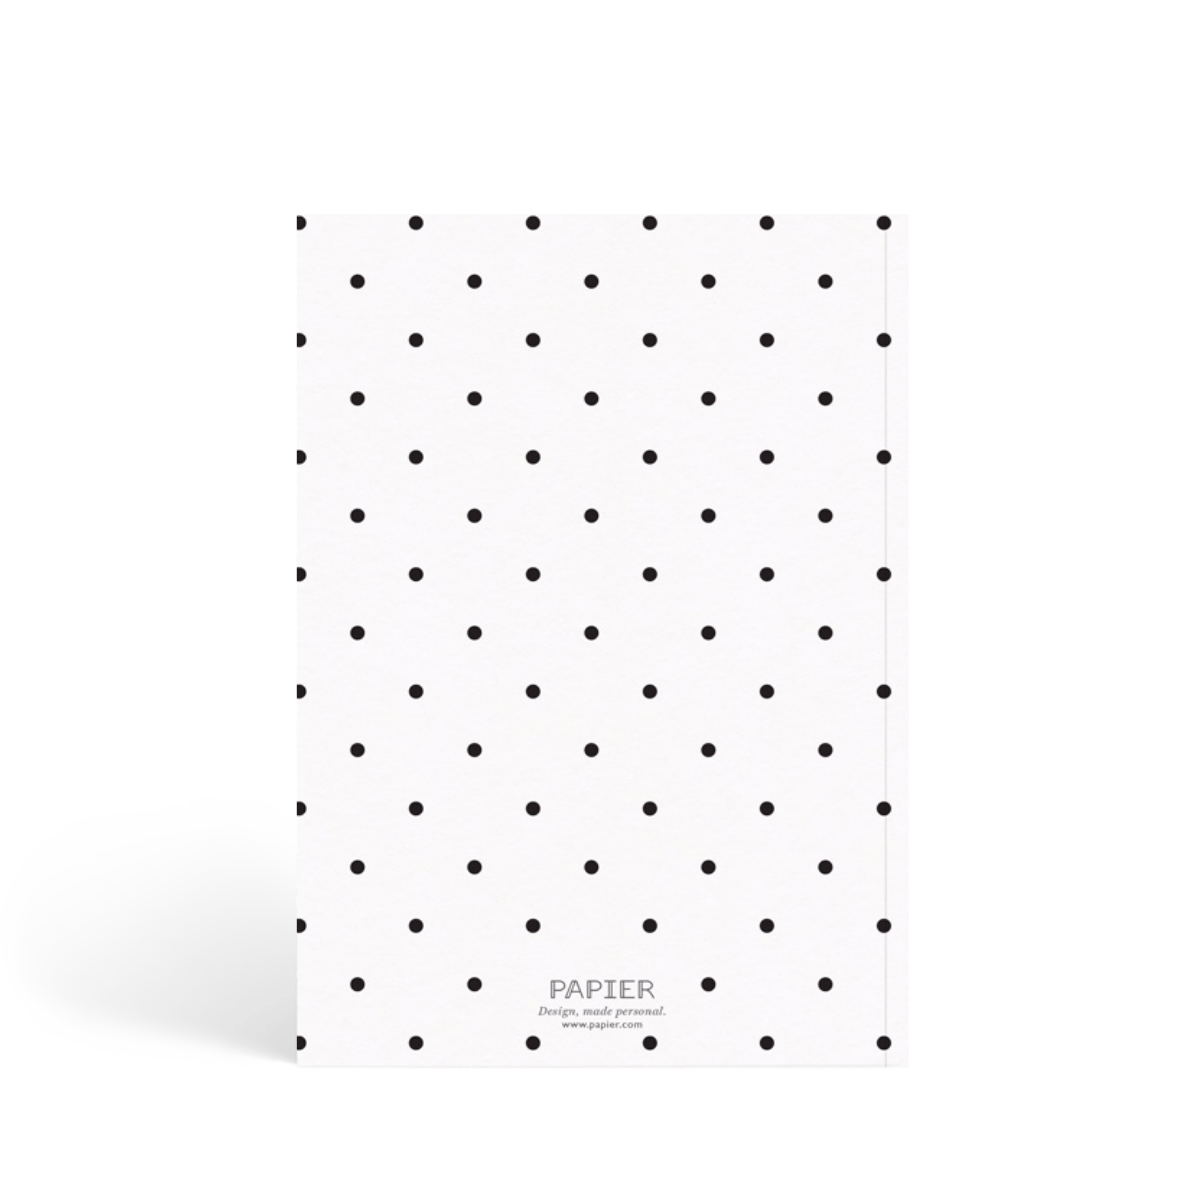 Https%3a%2f%2fwww.papier.com%2fproduct image%2f6691%2f5%2fpolka dots 1661 arriere 1461689914.png?ixlib=rb 1.1